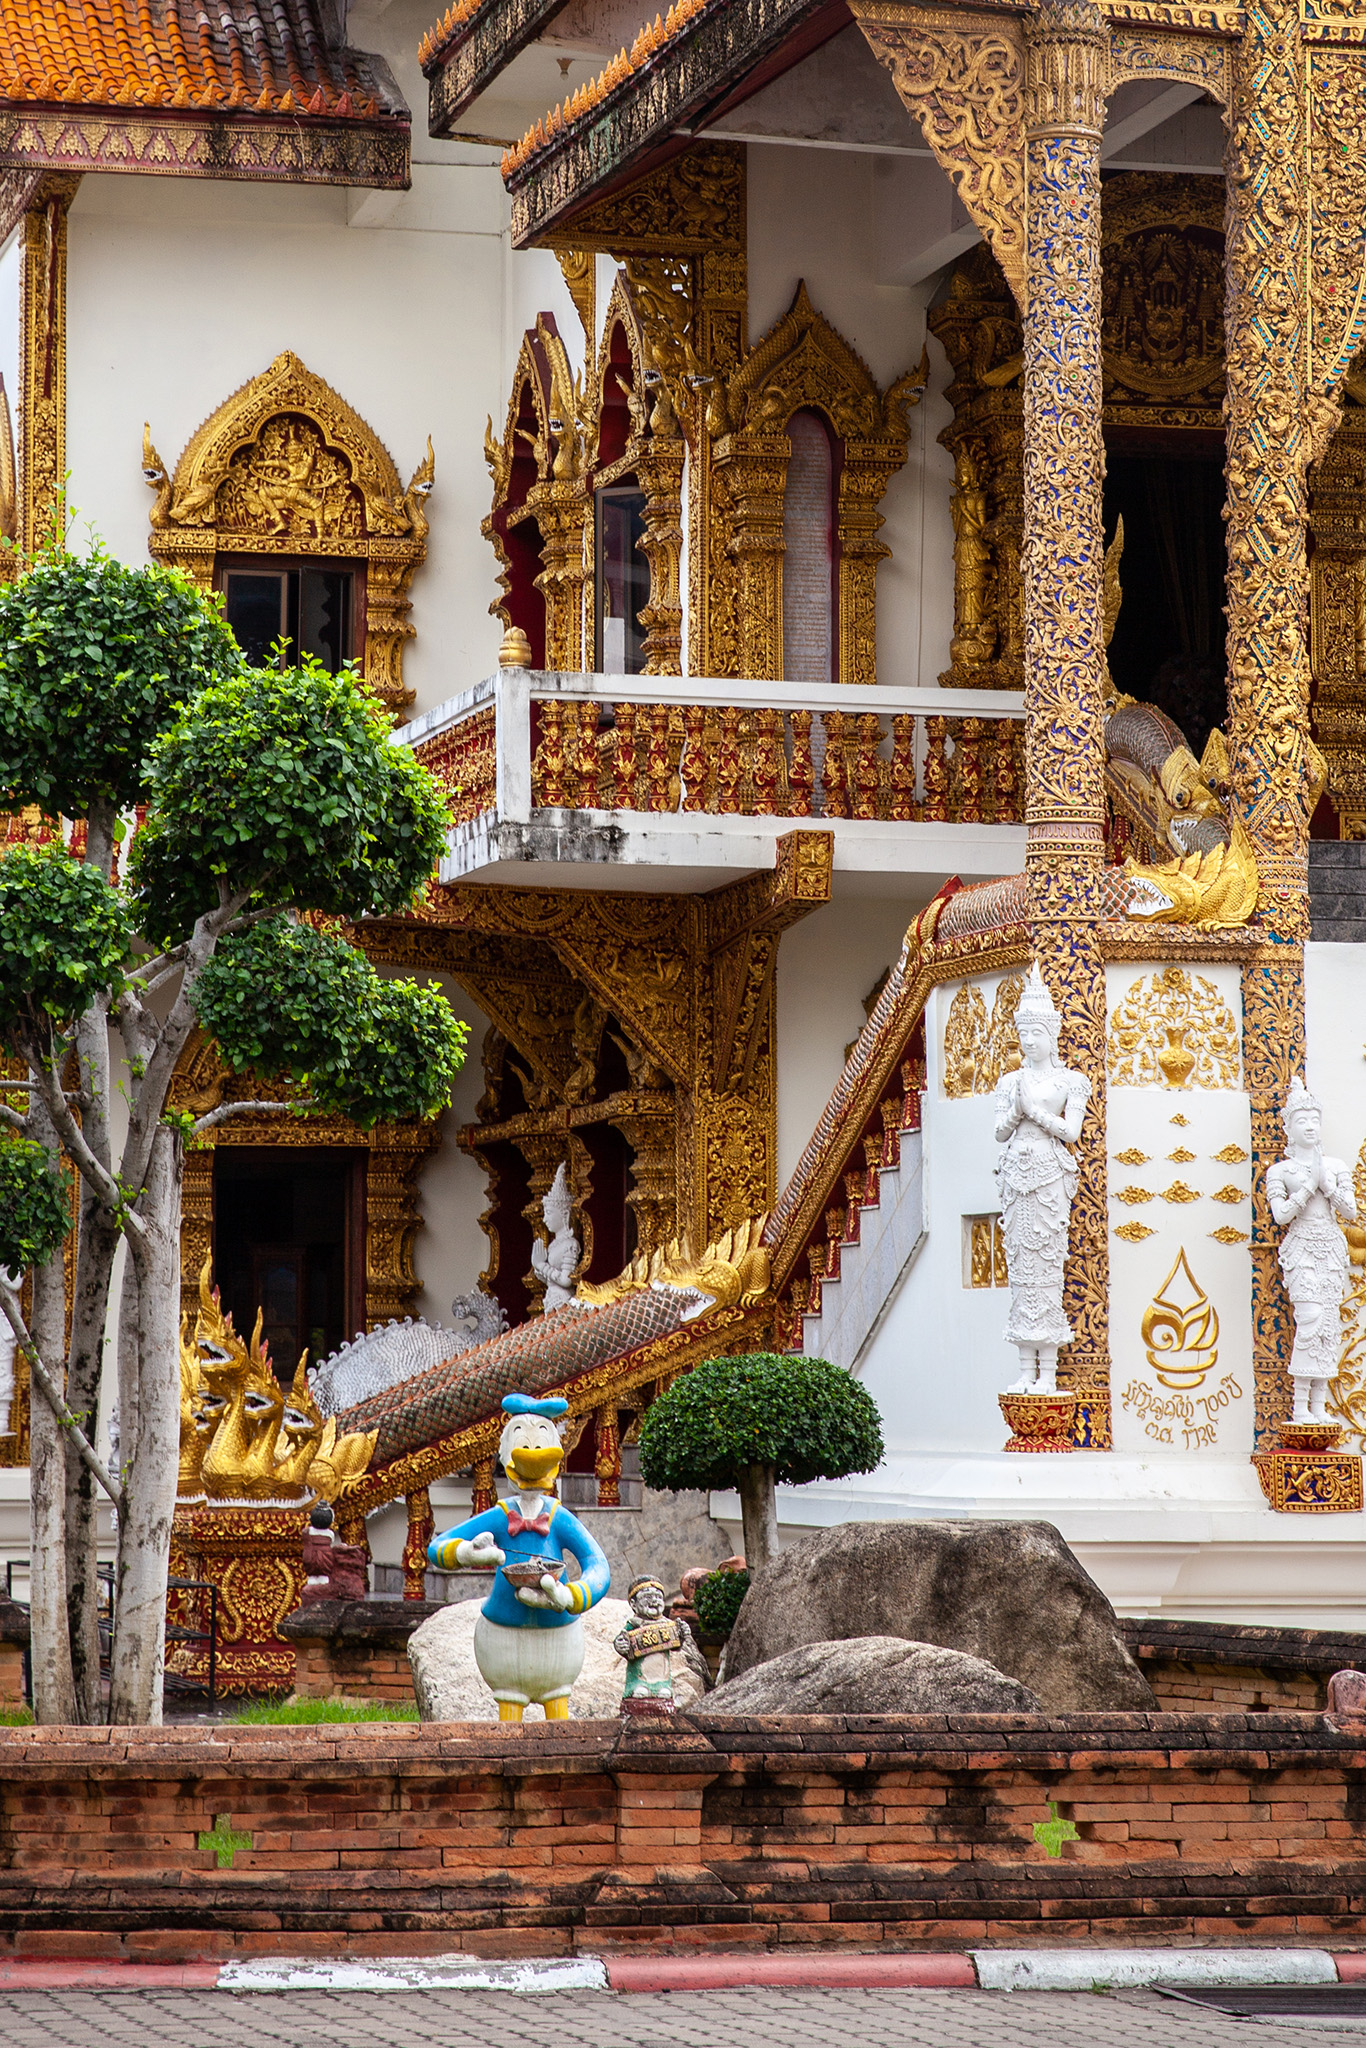 Donald Duck makes an appearance at Wat Bupparam